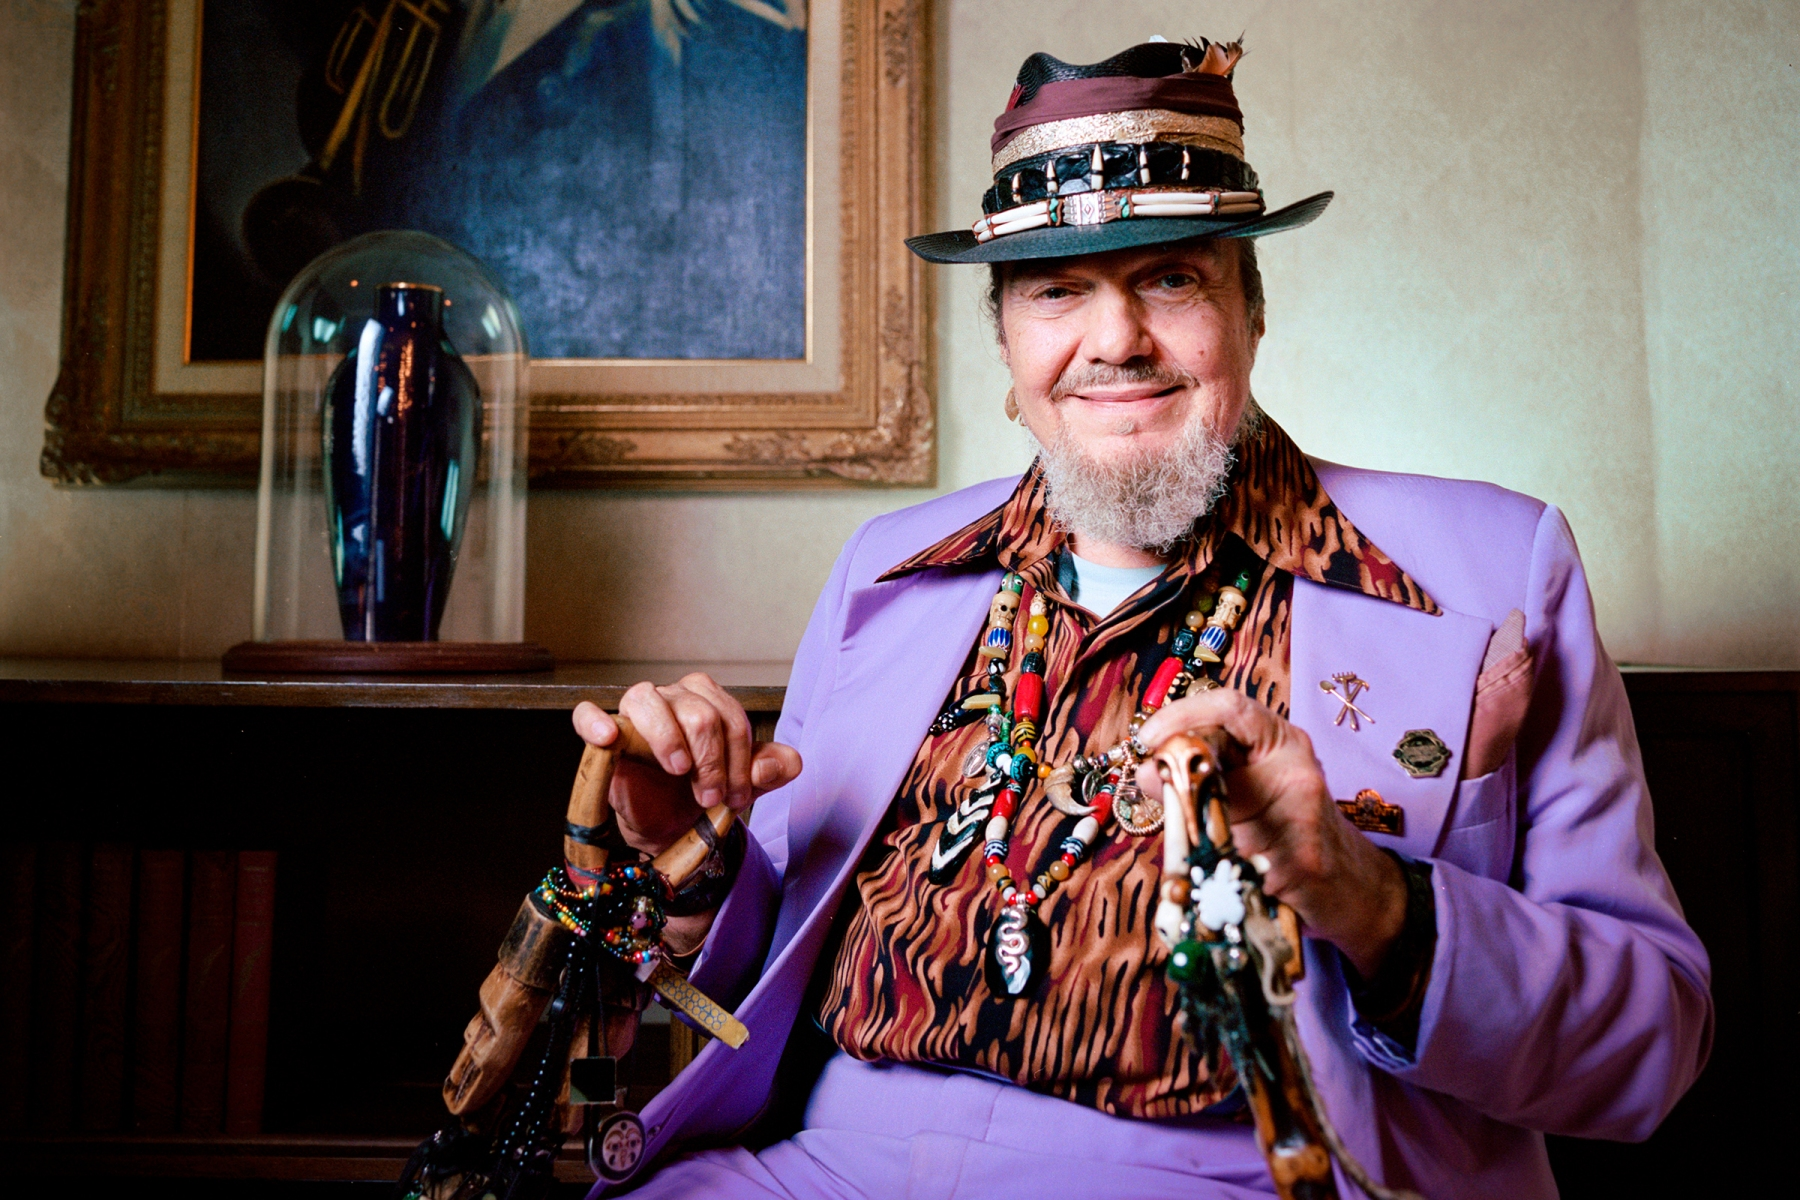 New Orleans musician Dr. John (Malcom Rebbenack, Mac Rebbenack) photographed at the Louis Armstrong House and Museum in Corona, Queens in NYC, on August 14, 2014.